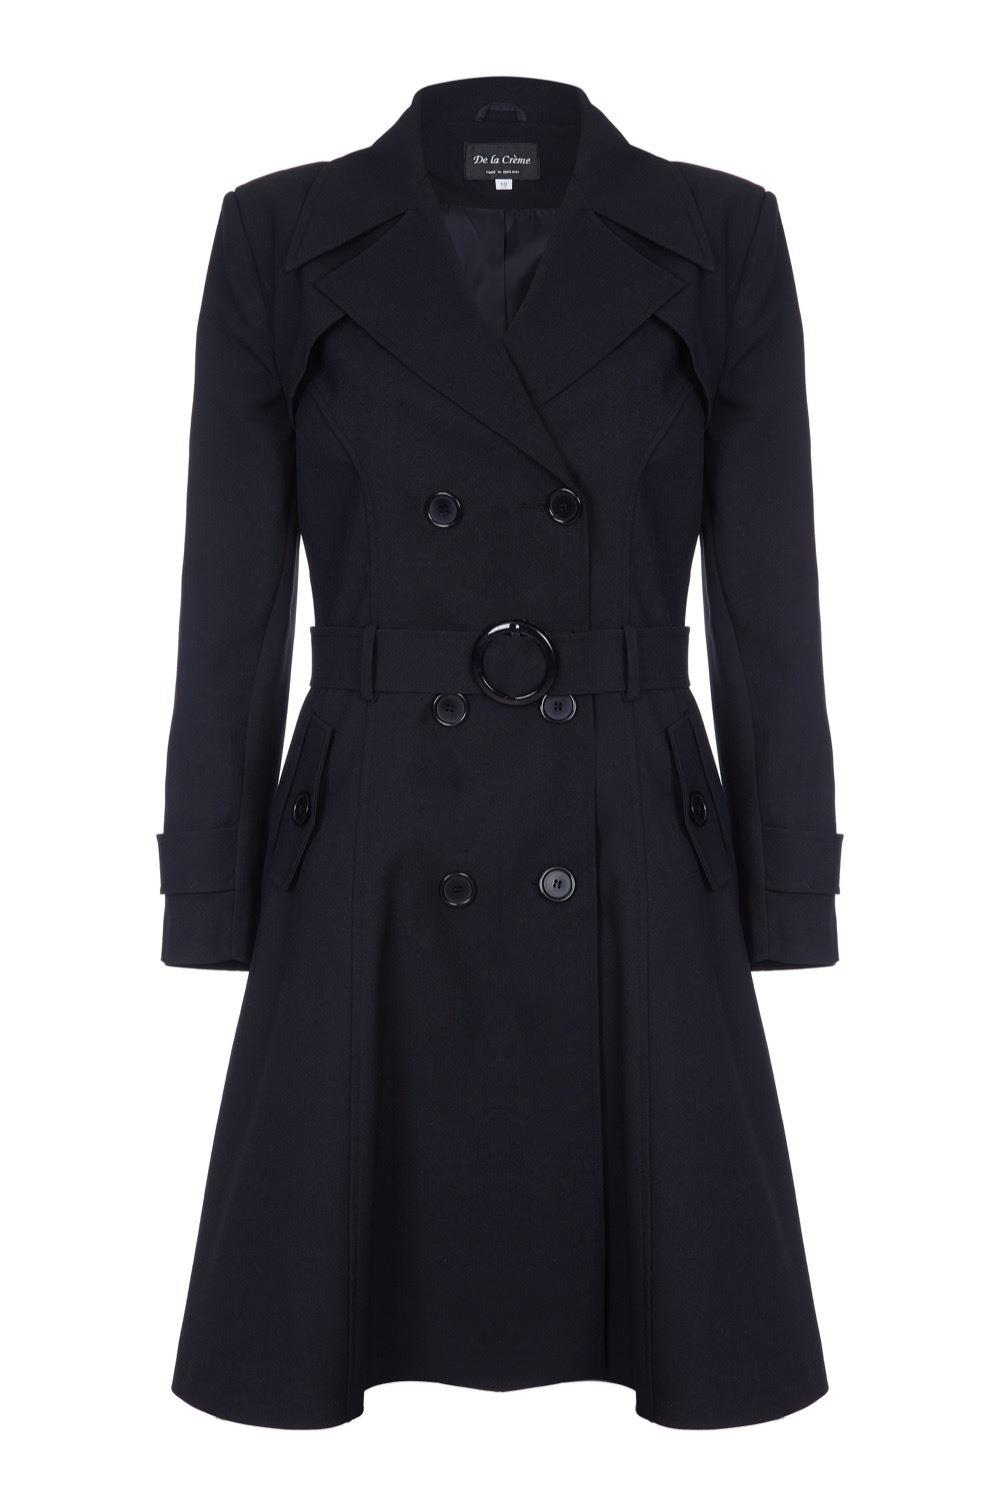 Anastasia  - Womens Spring Belted Trench Coat